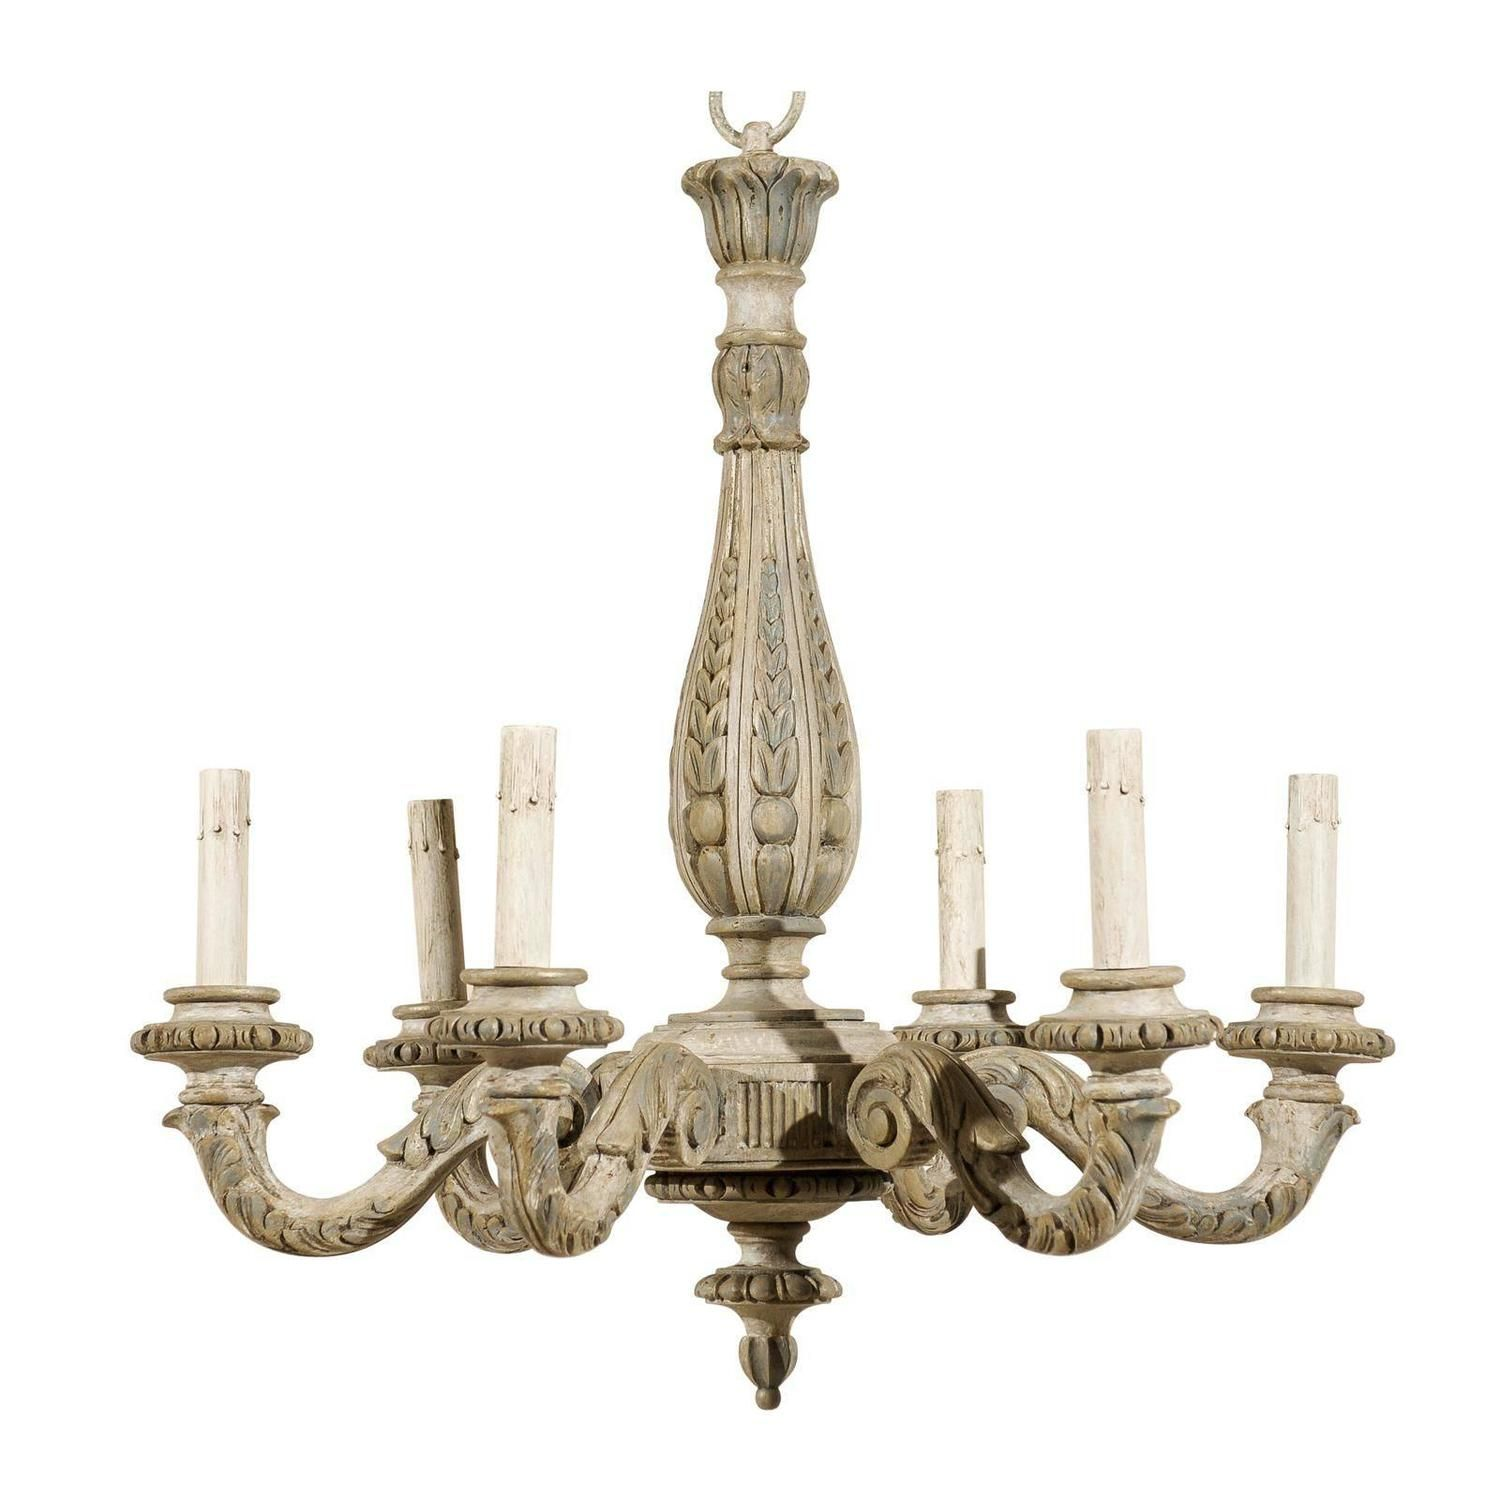 French Vintage Six-Light Carved Wood Chandelier - French Vintage Six-Light Carved Wood Chandelier French Vintage